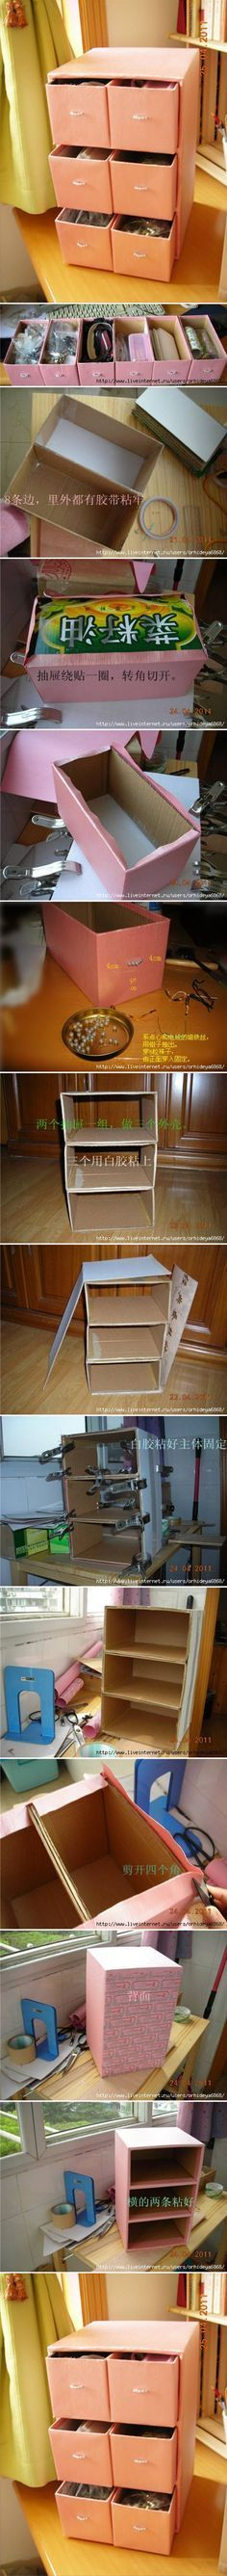 DIY Small Cardboard Chest DIY Projects